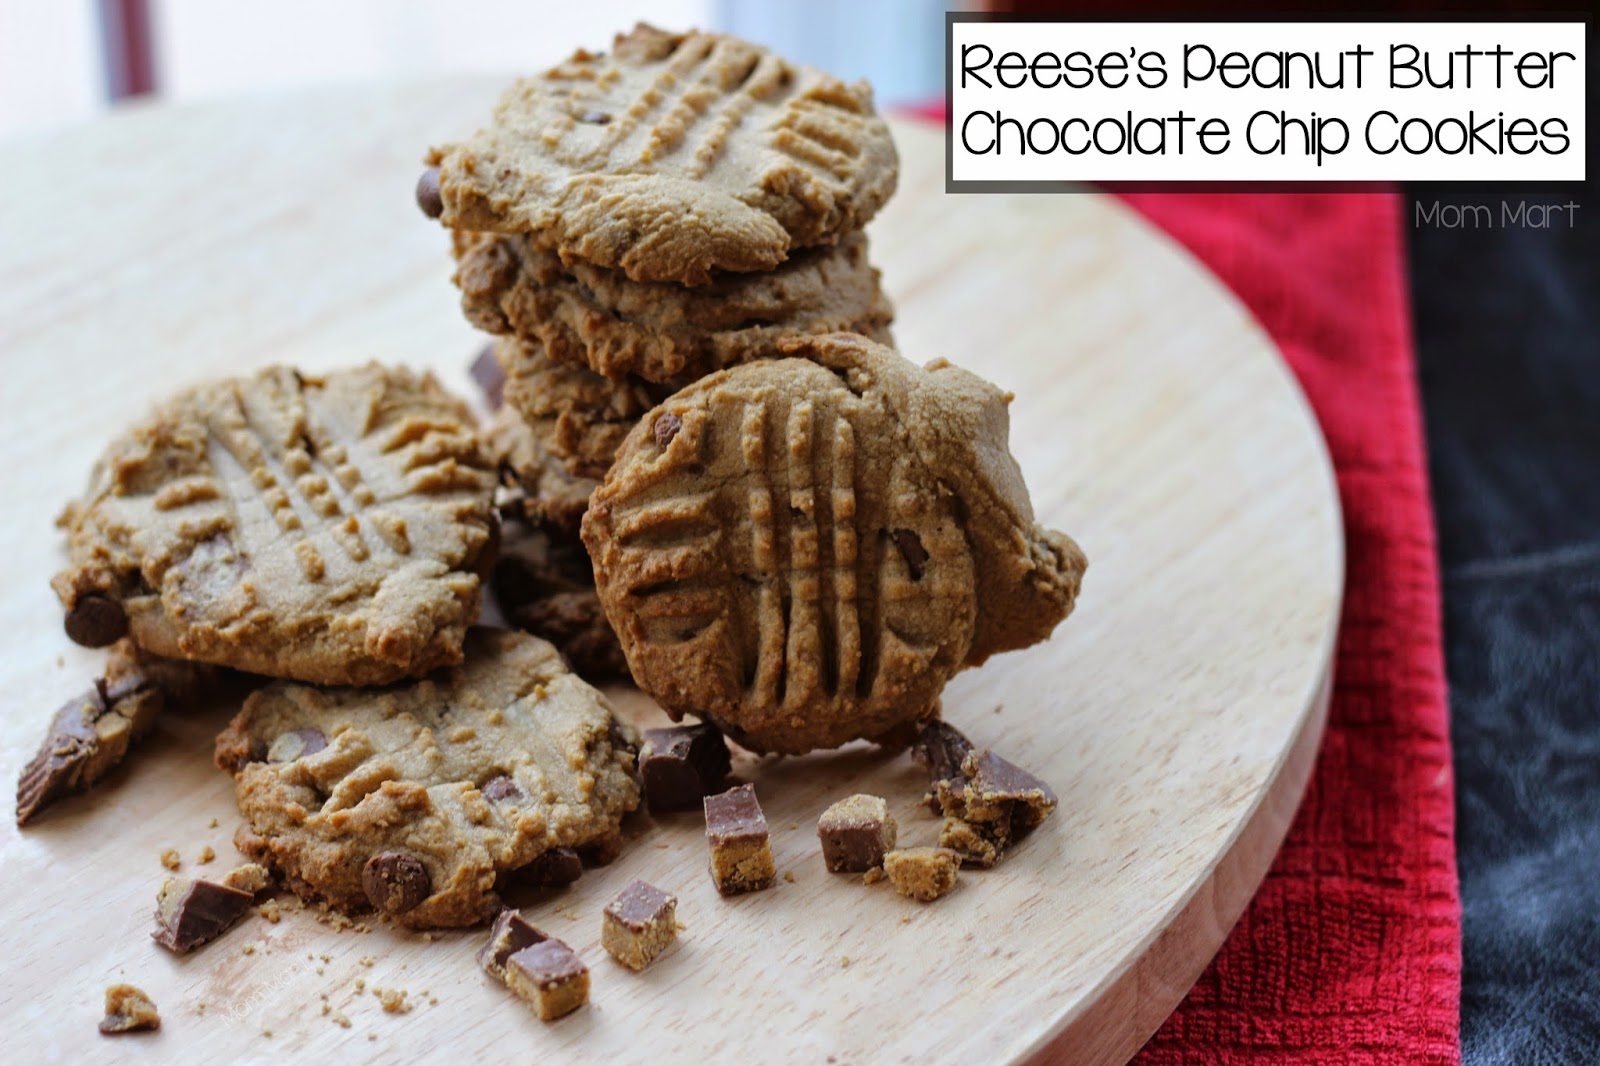 Reese's Peanut Butter Chocolate Chip Cookies #Recipe #Dessert #Foodie